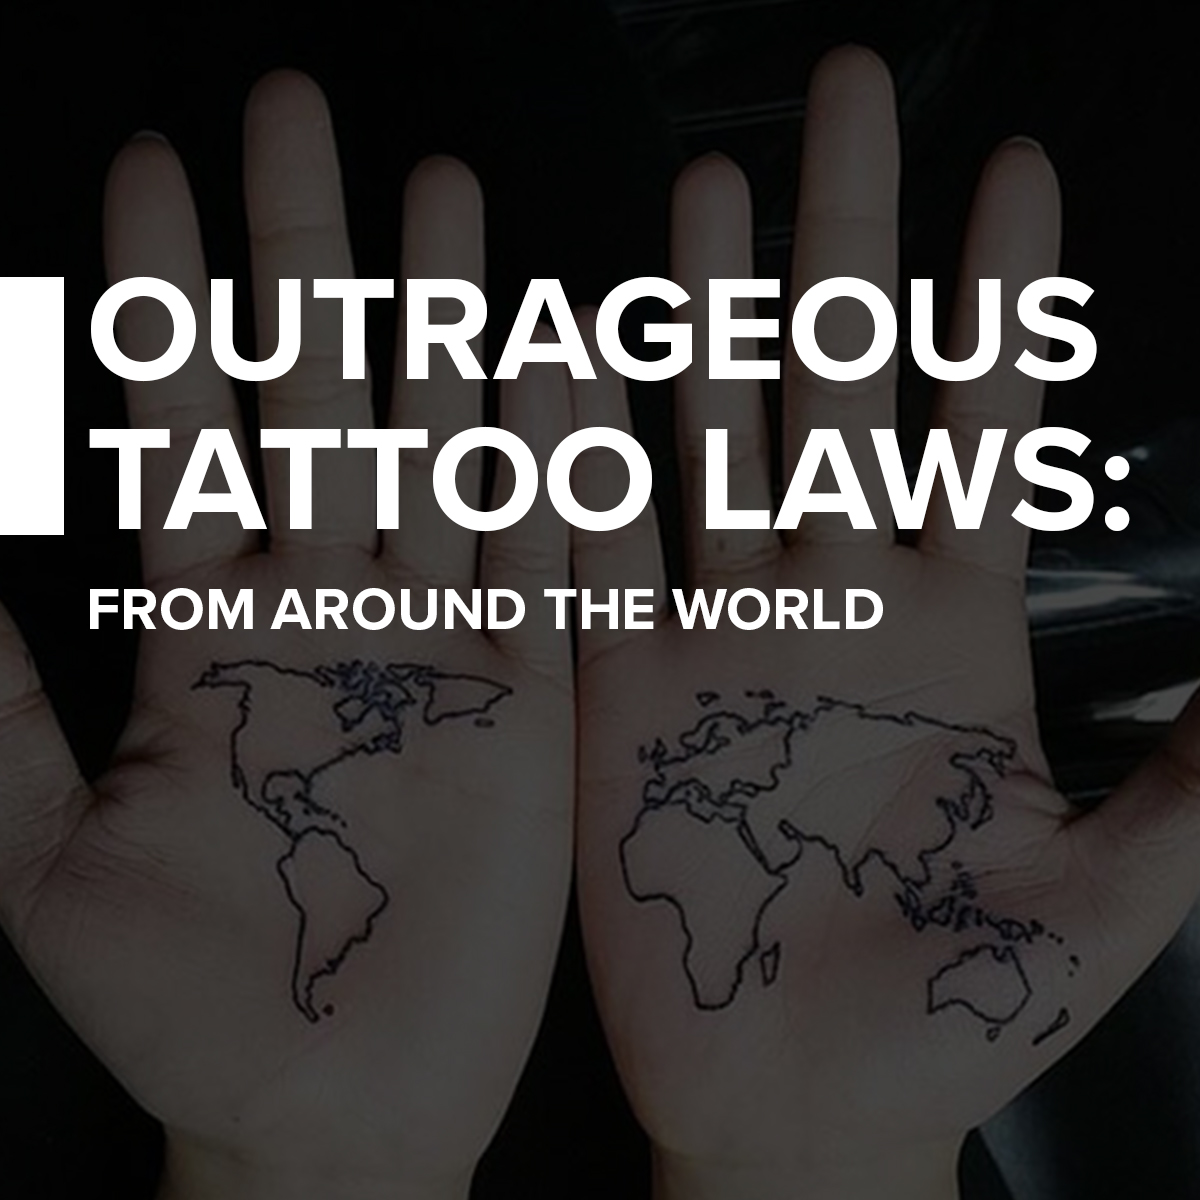 10 Outrageous Tattoo Laws From Around the World | Custom ...